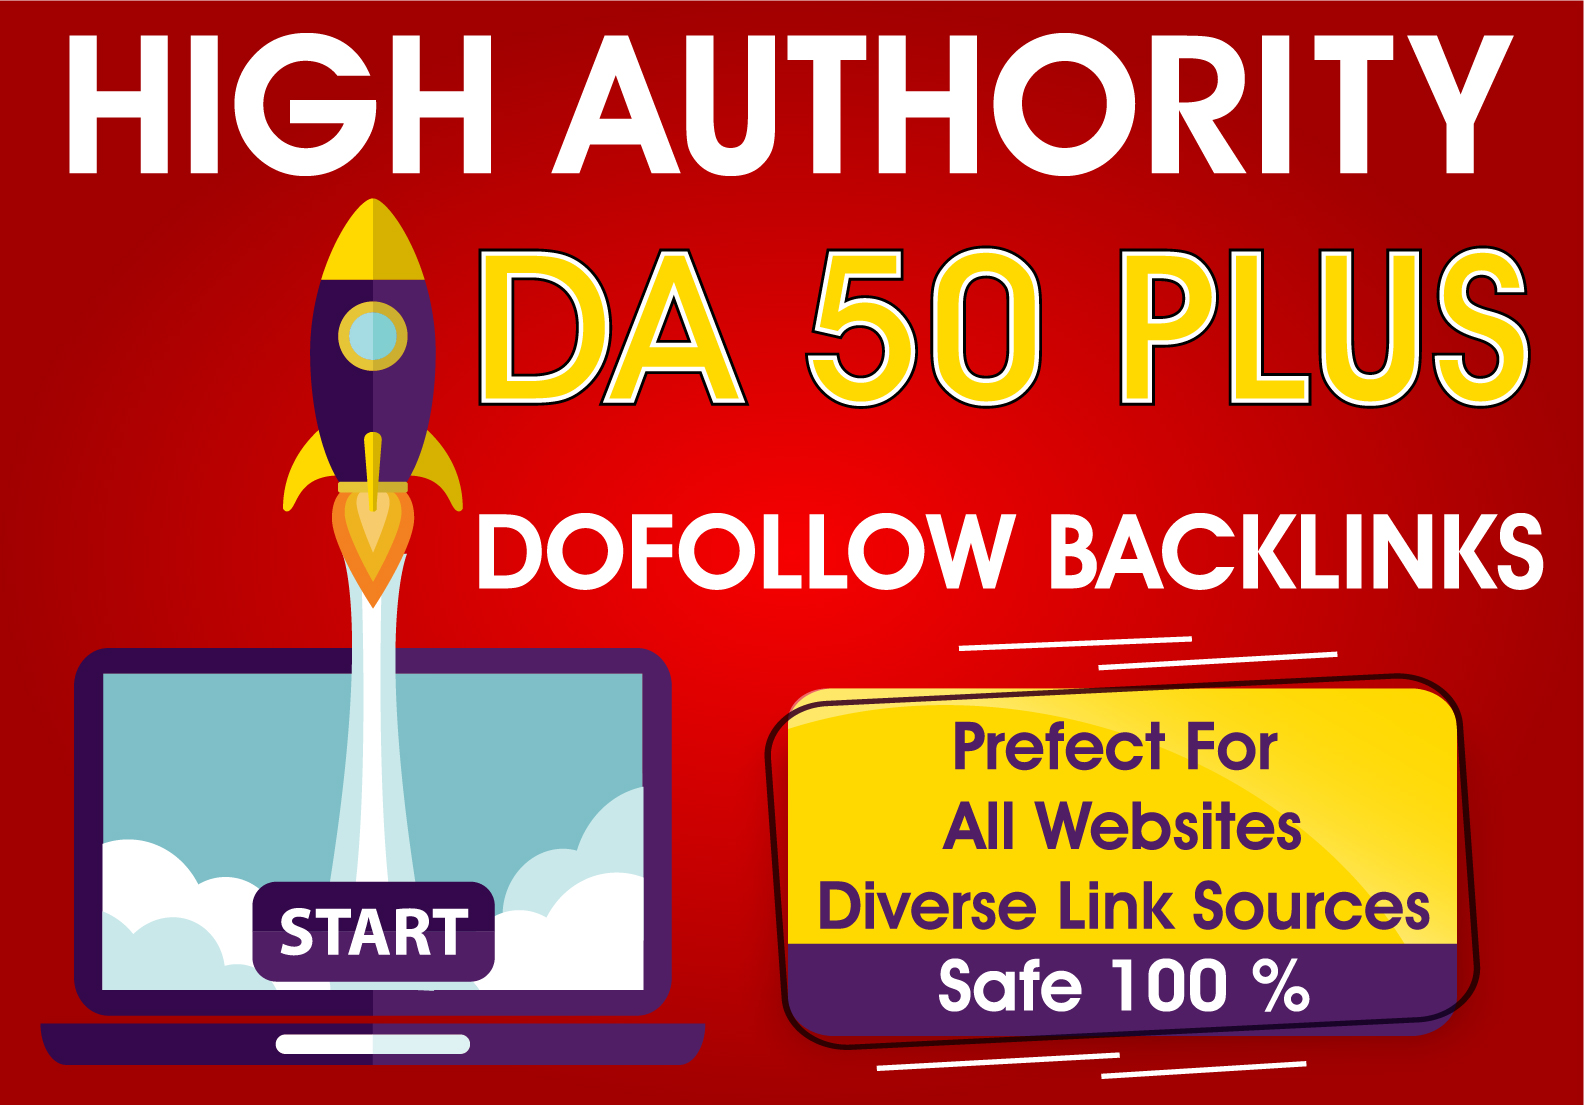 90 high quality dofollow SEO backlinks da 50 plus authority white hat link building